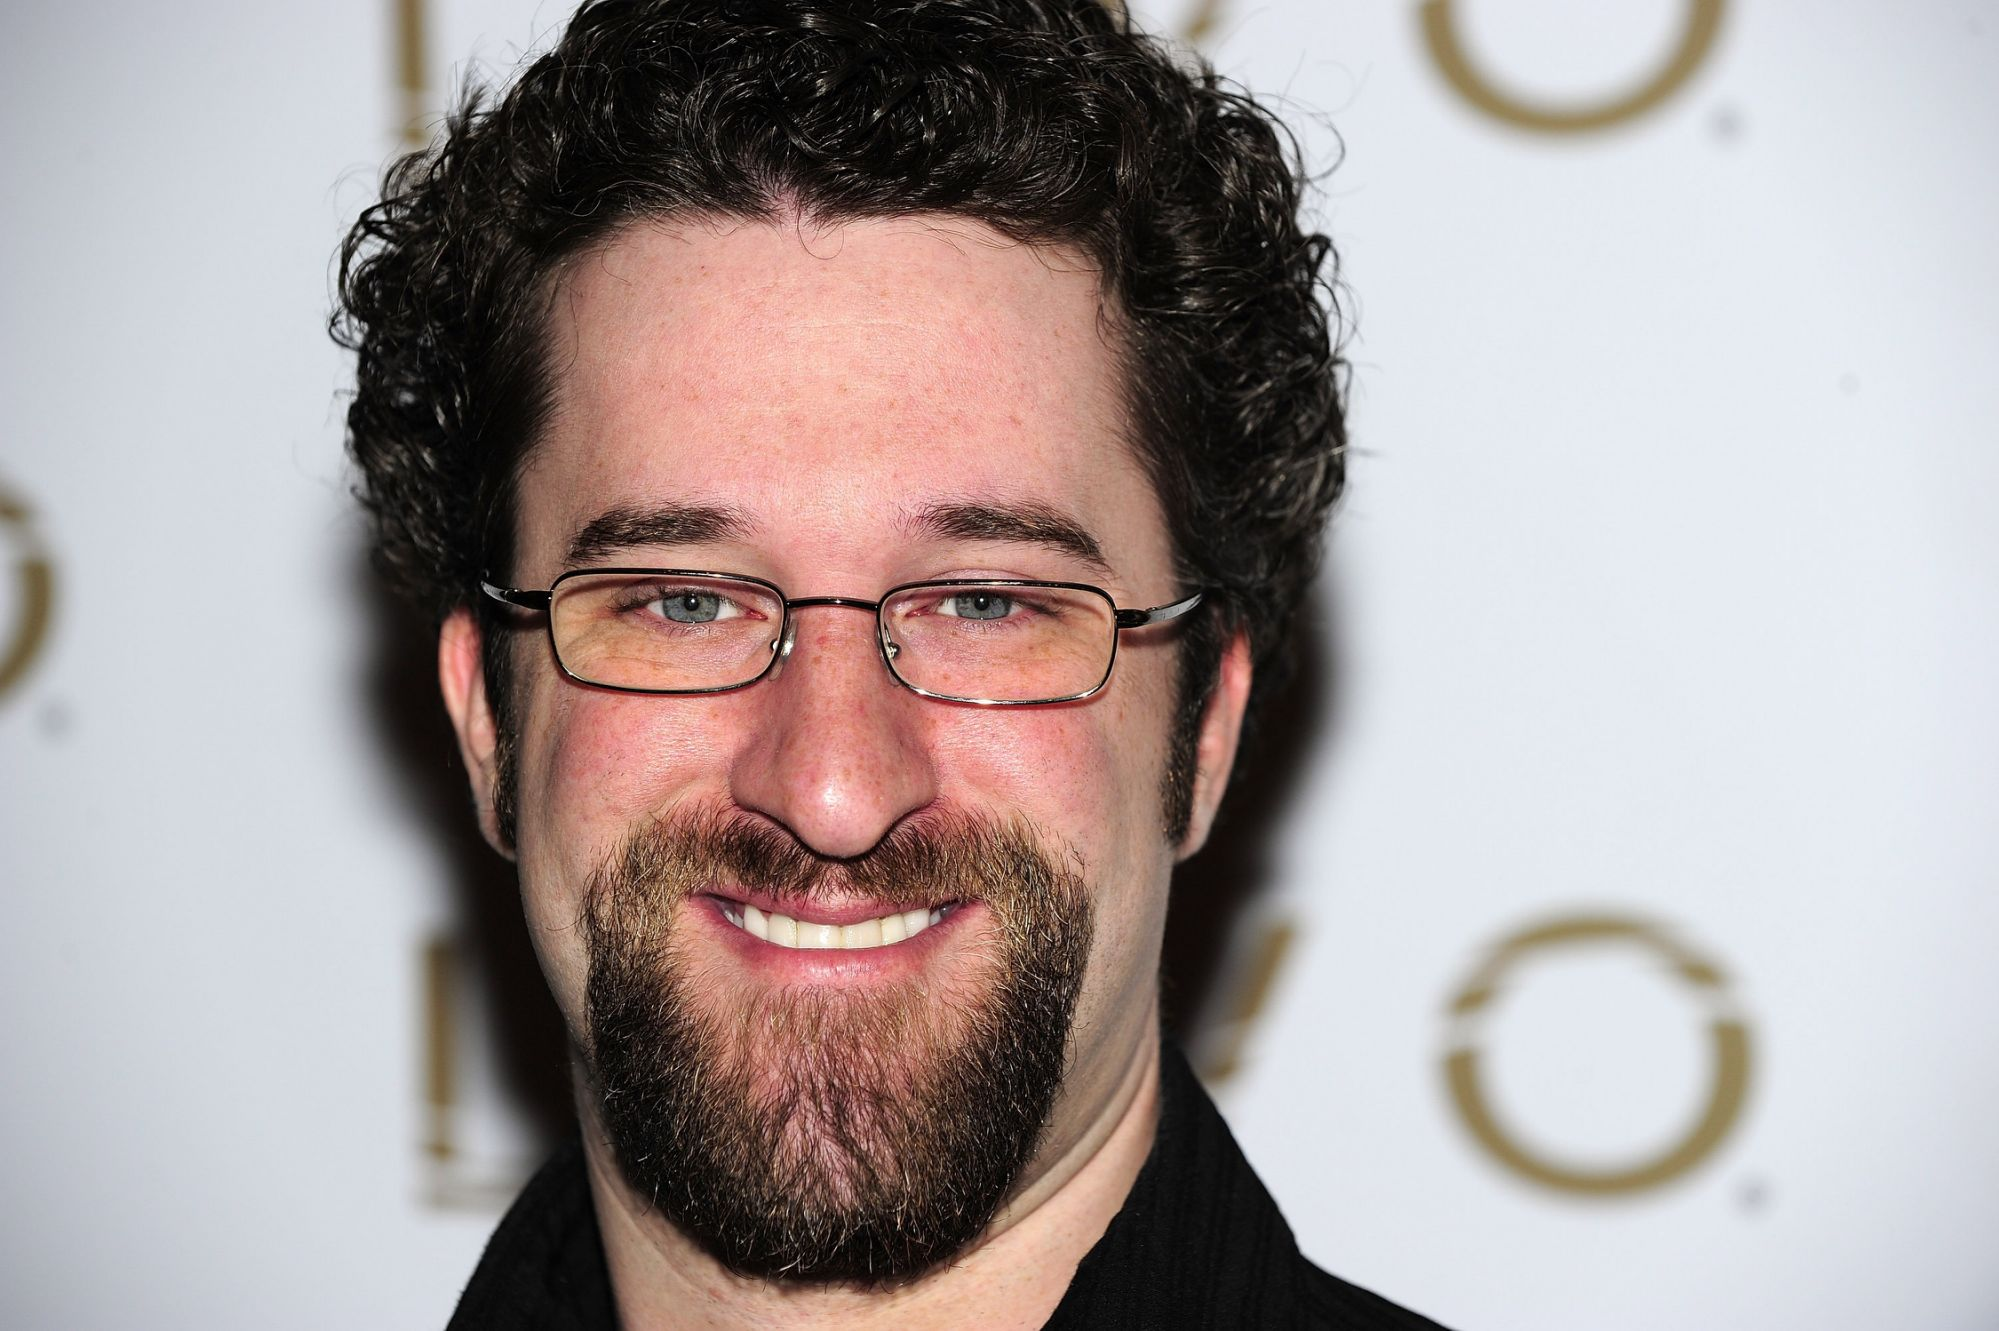 """Dustin Diamond, star of """"Saved by the Bell,"""" is still in the hospital"""